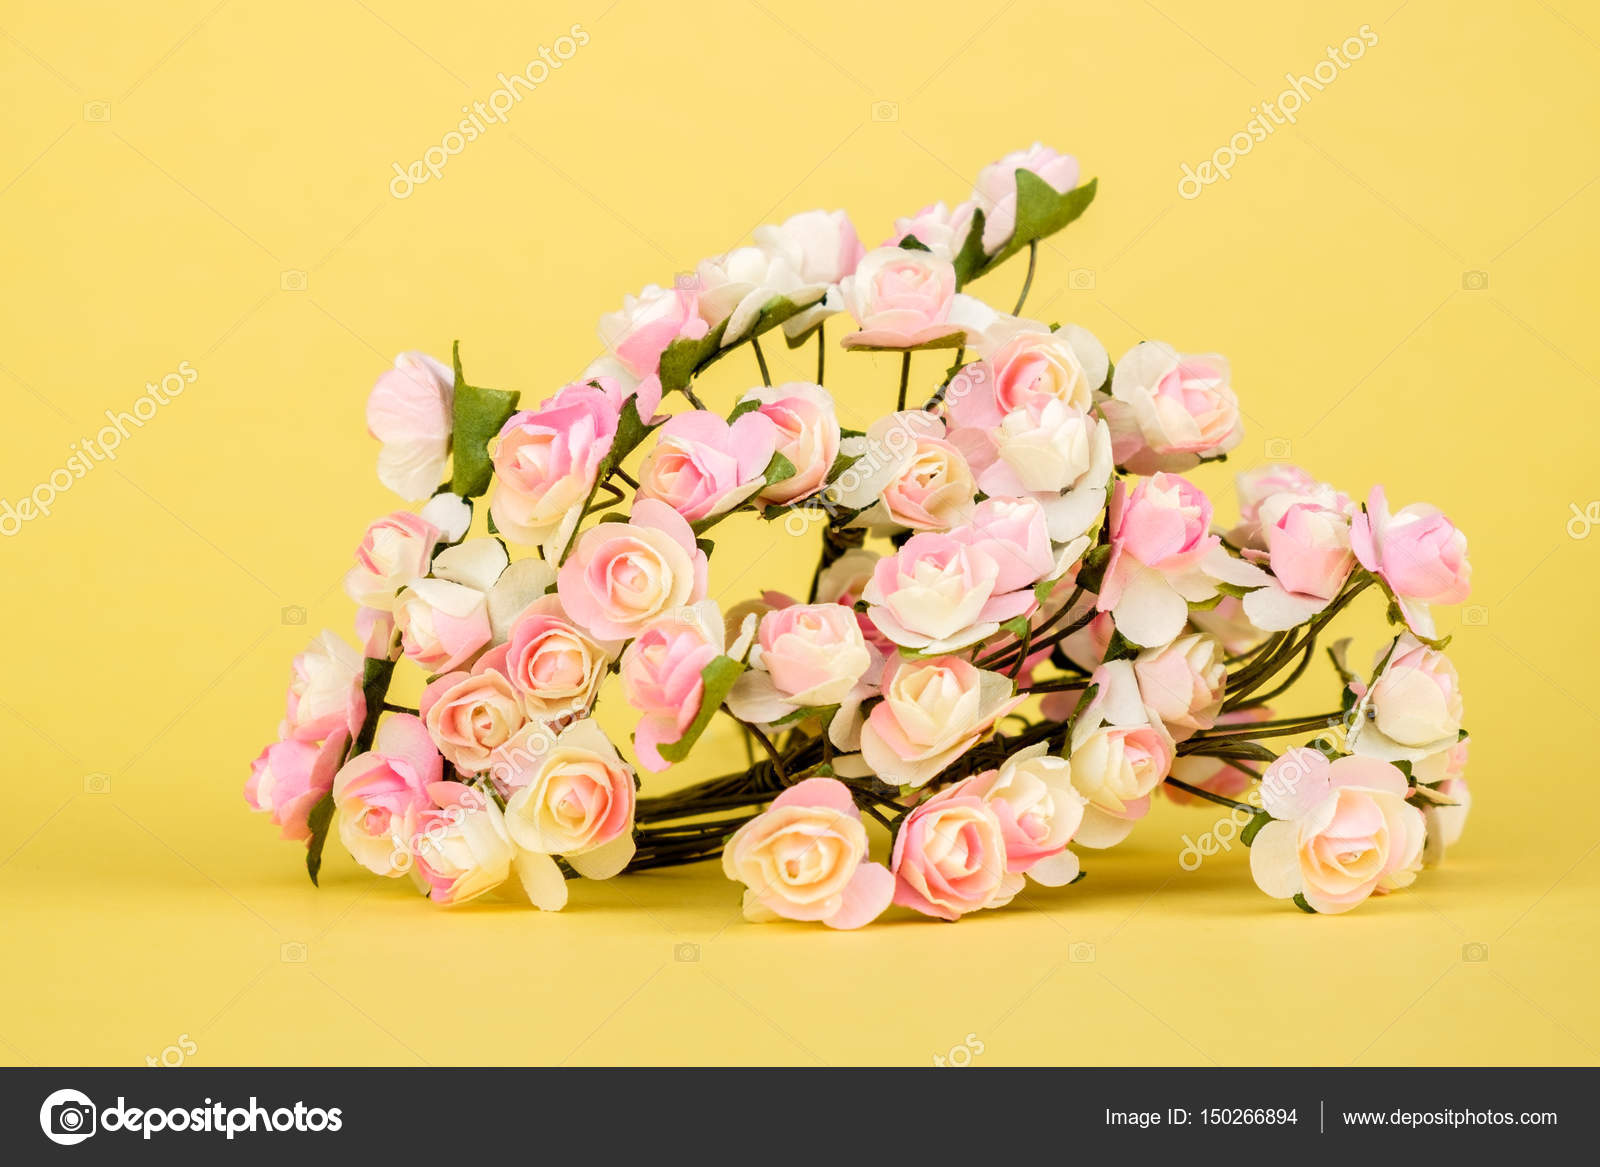 Beautiful Artificial Flowers On Colourful Background Stock Photo